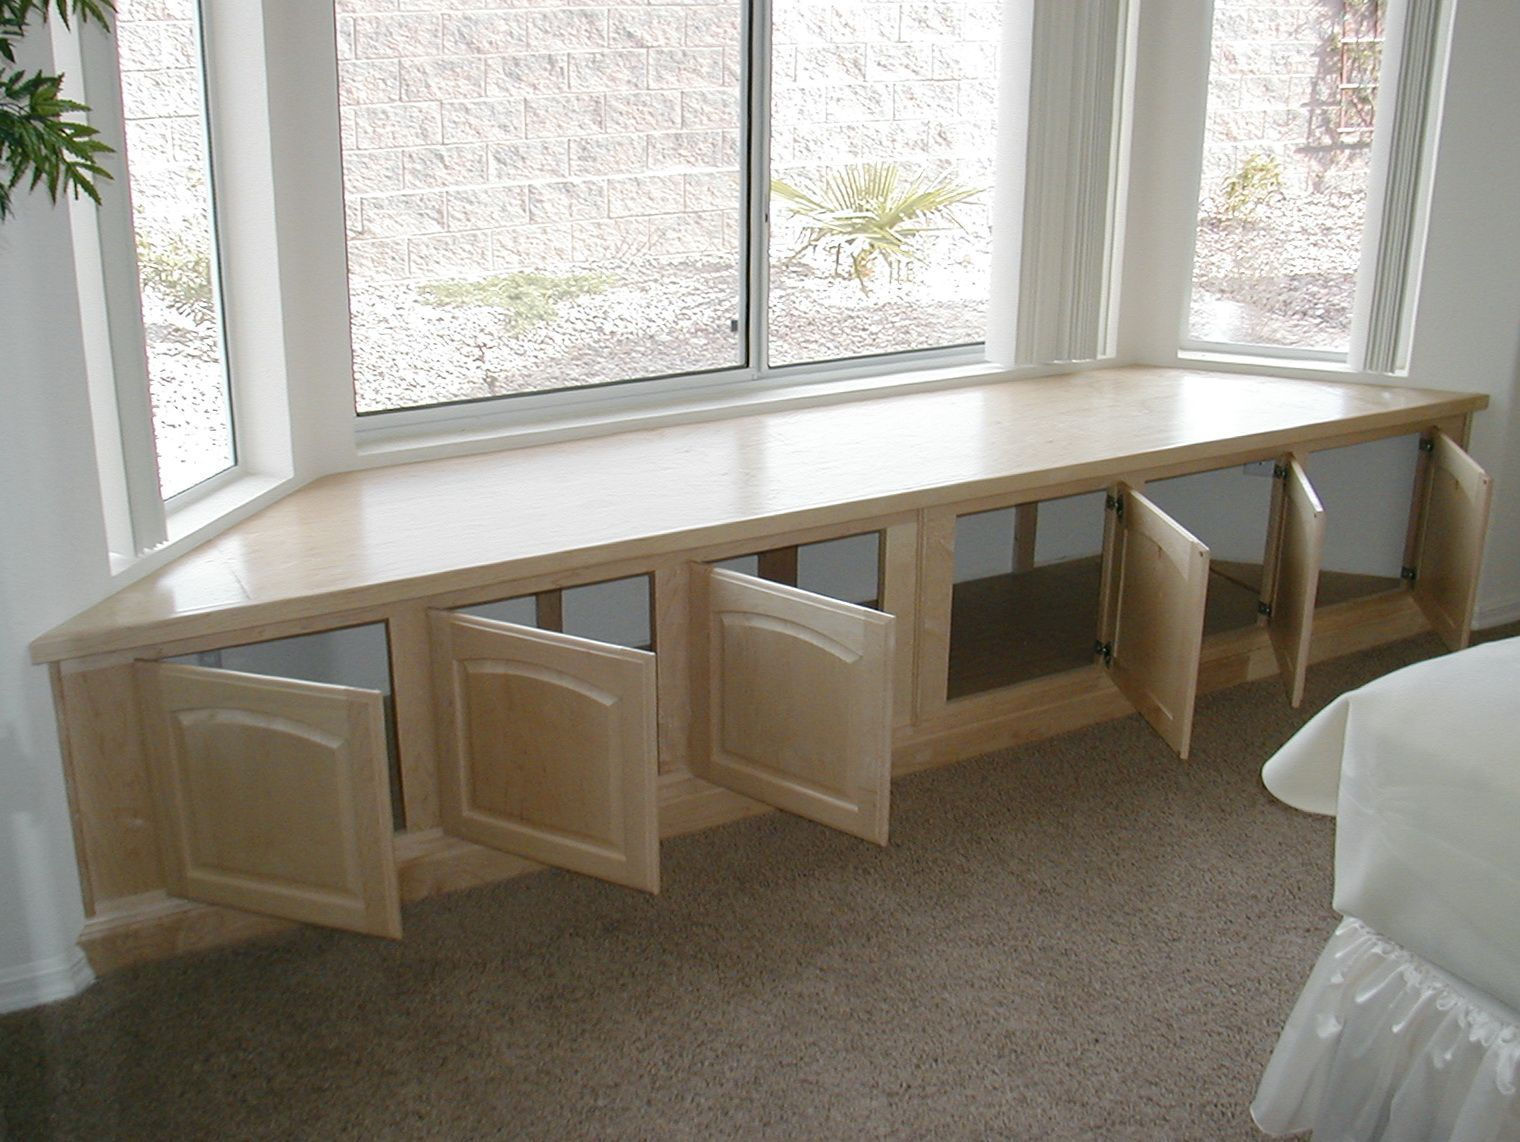 81 Reference Of Bay Window Bench Seat Plans In 2020 Window Seat Storage Bay Window Benches Window Seat Kitchen